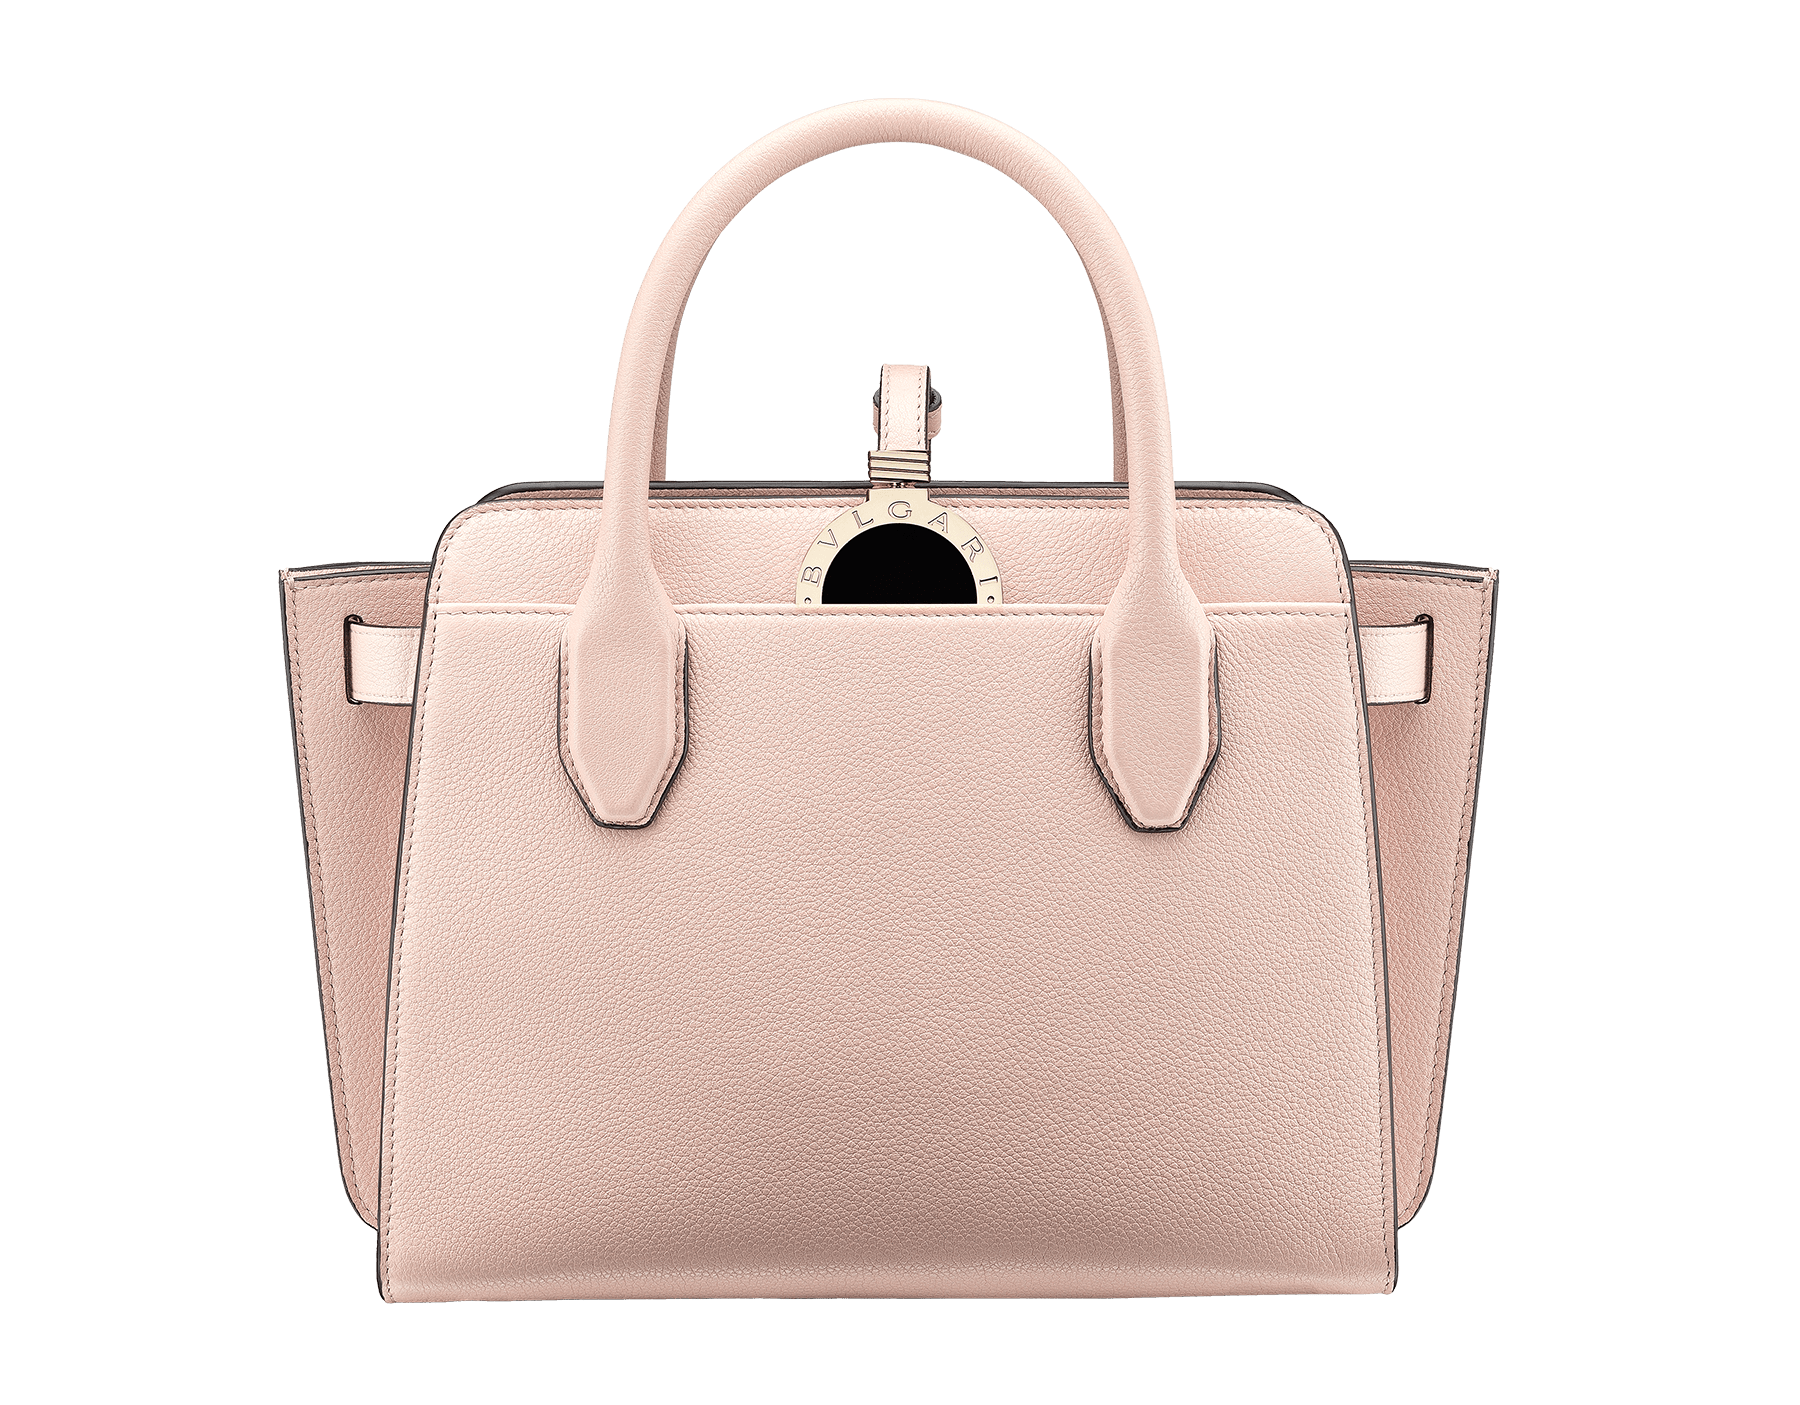 BVLGARI BVLGARI Alba tote bag in crystal rose grain calf leather, with zip closure. Iconic double logo pendant in brass light gold plated metal with black enamel on the front side, leather on the back side and Tubogas motif 833-CL image 1